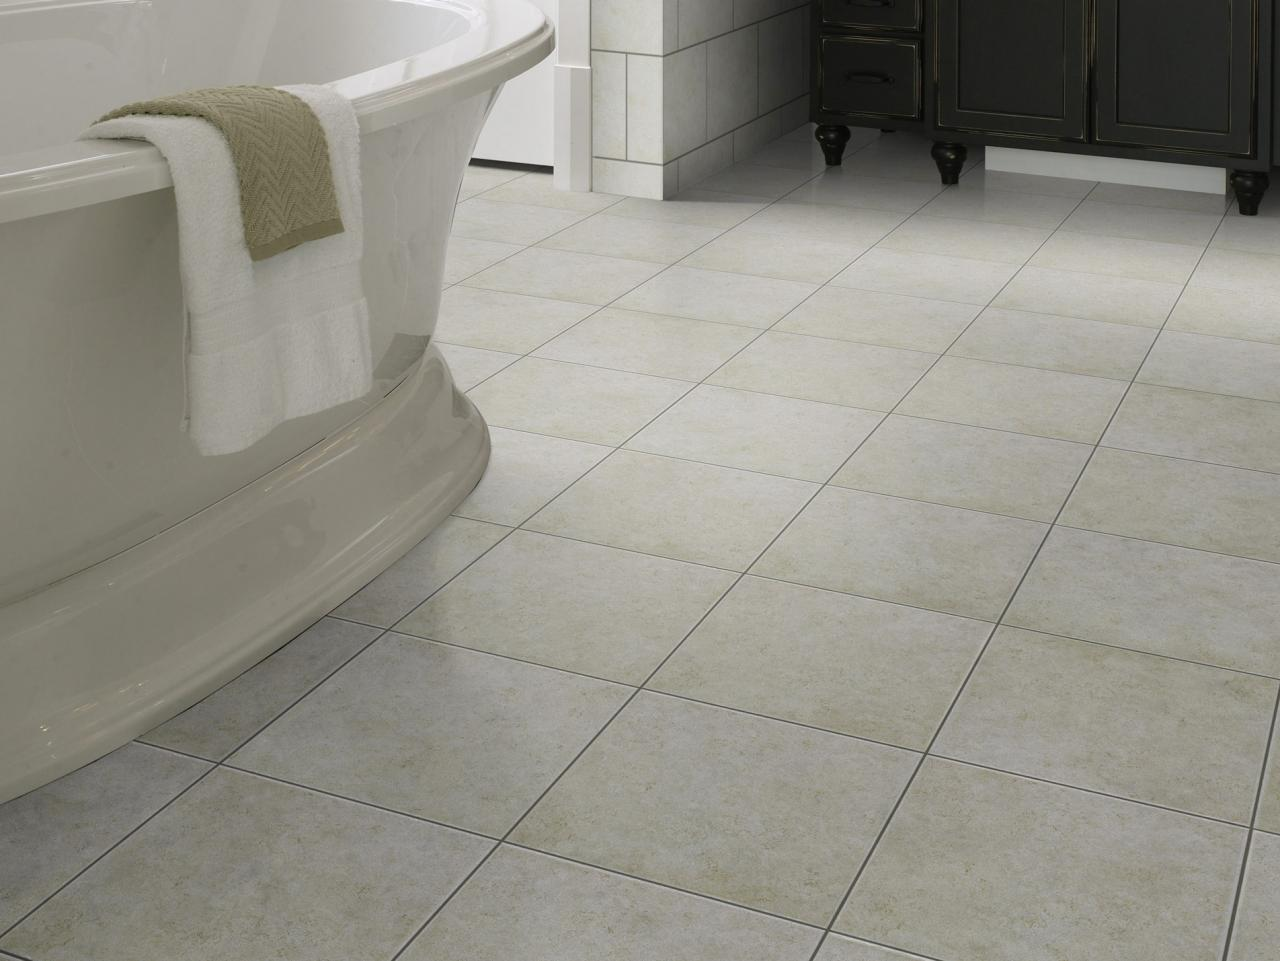 Why homeowners love ceramic tile hgtv why homeowners love ceramic tile dailygadgetfo Gallery